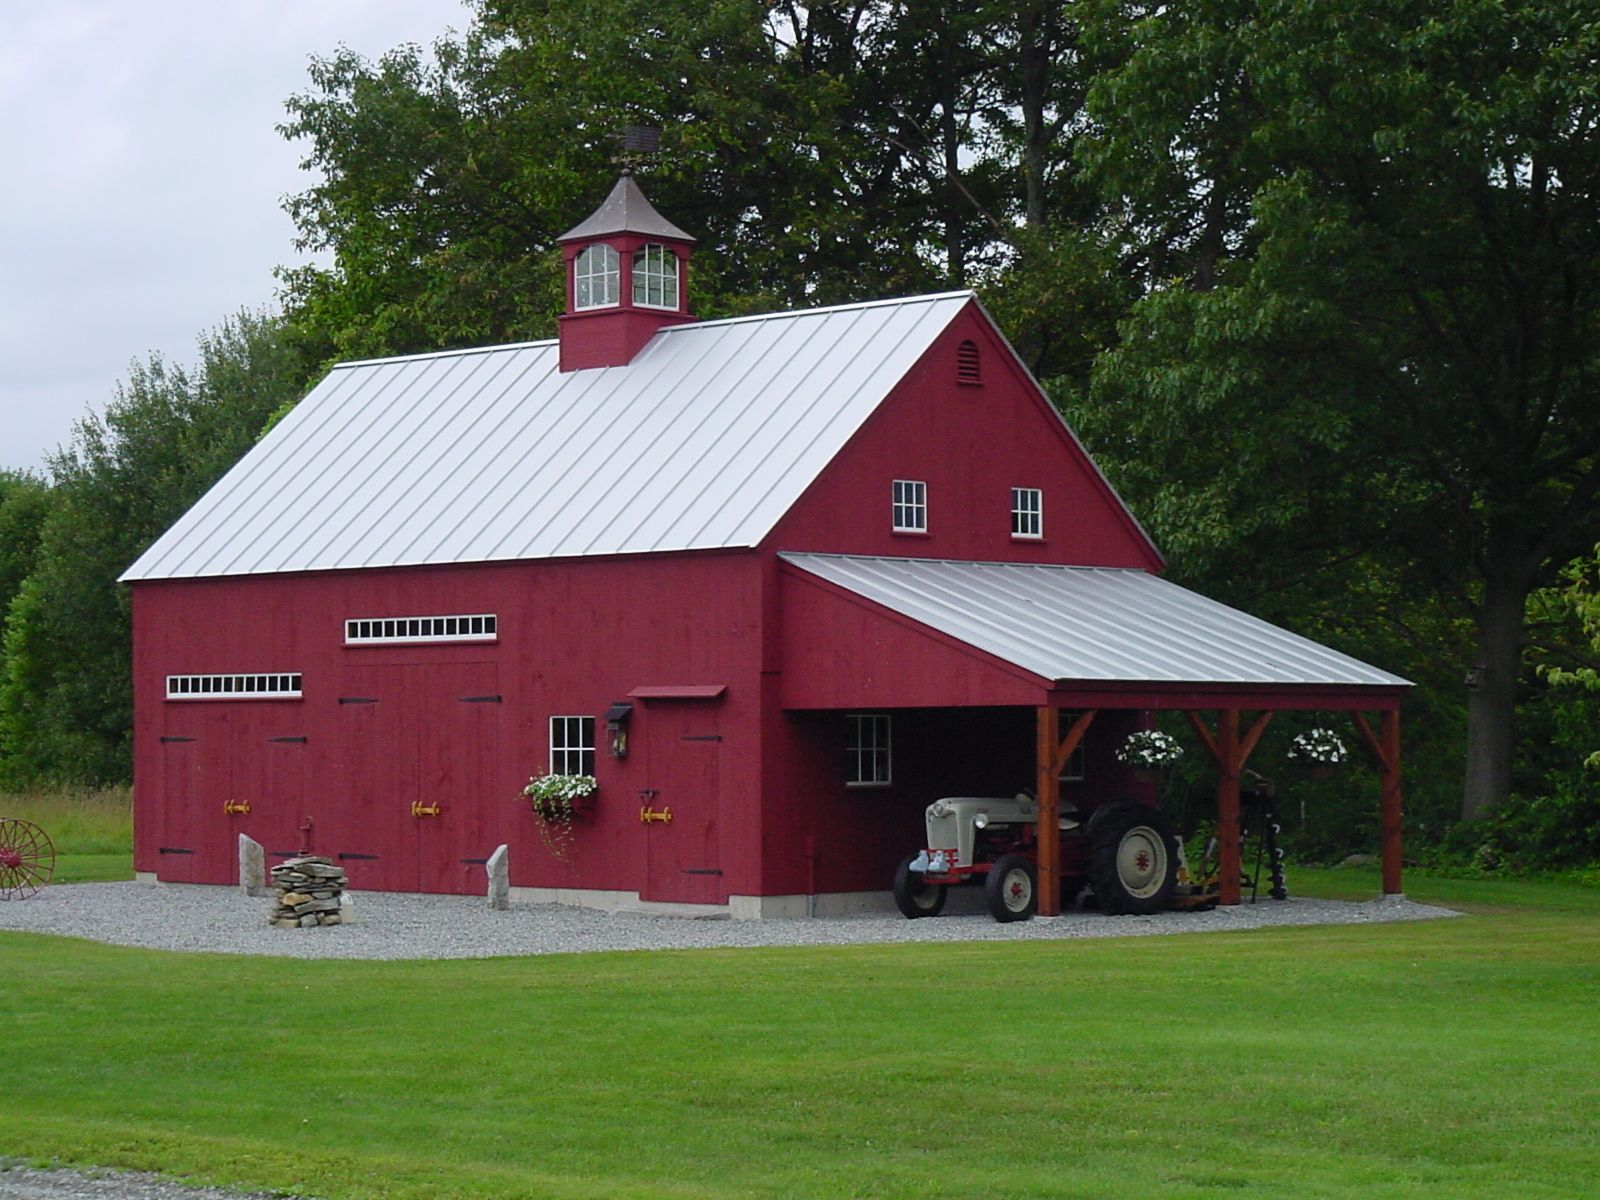 Our 1 1 2 Story Barn 22 39 X 36 39 With 12 39 X 20 39 Open Lean To